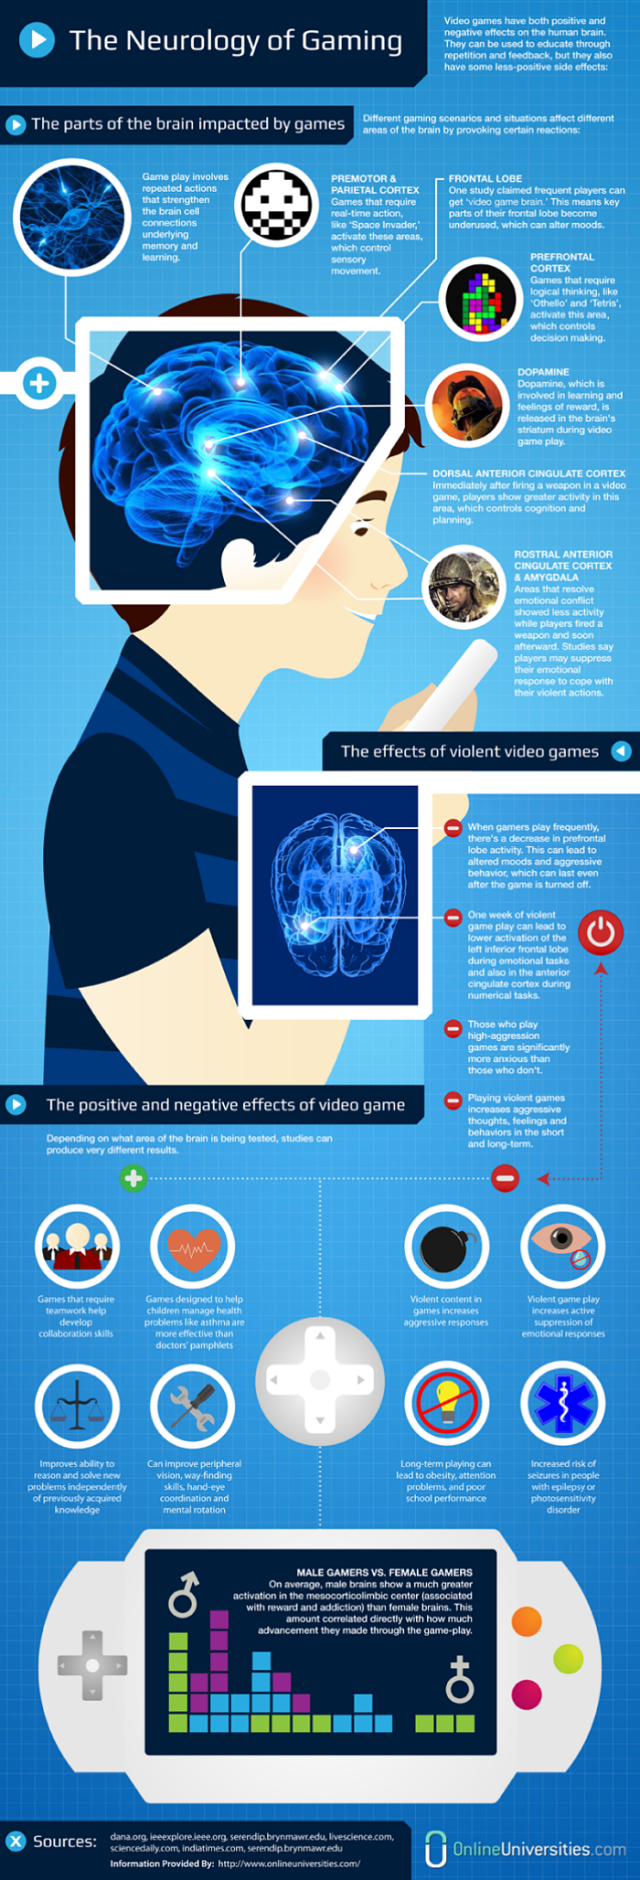 effect-video-games-brain-infographic